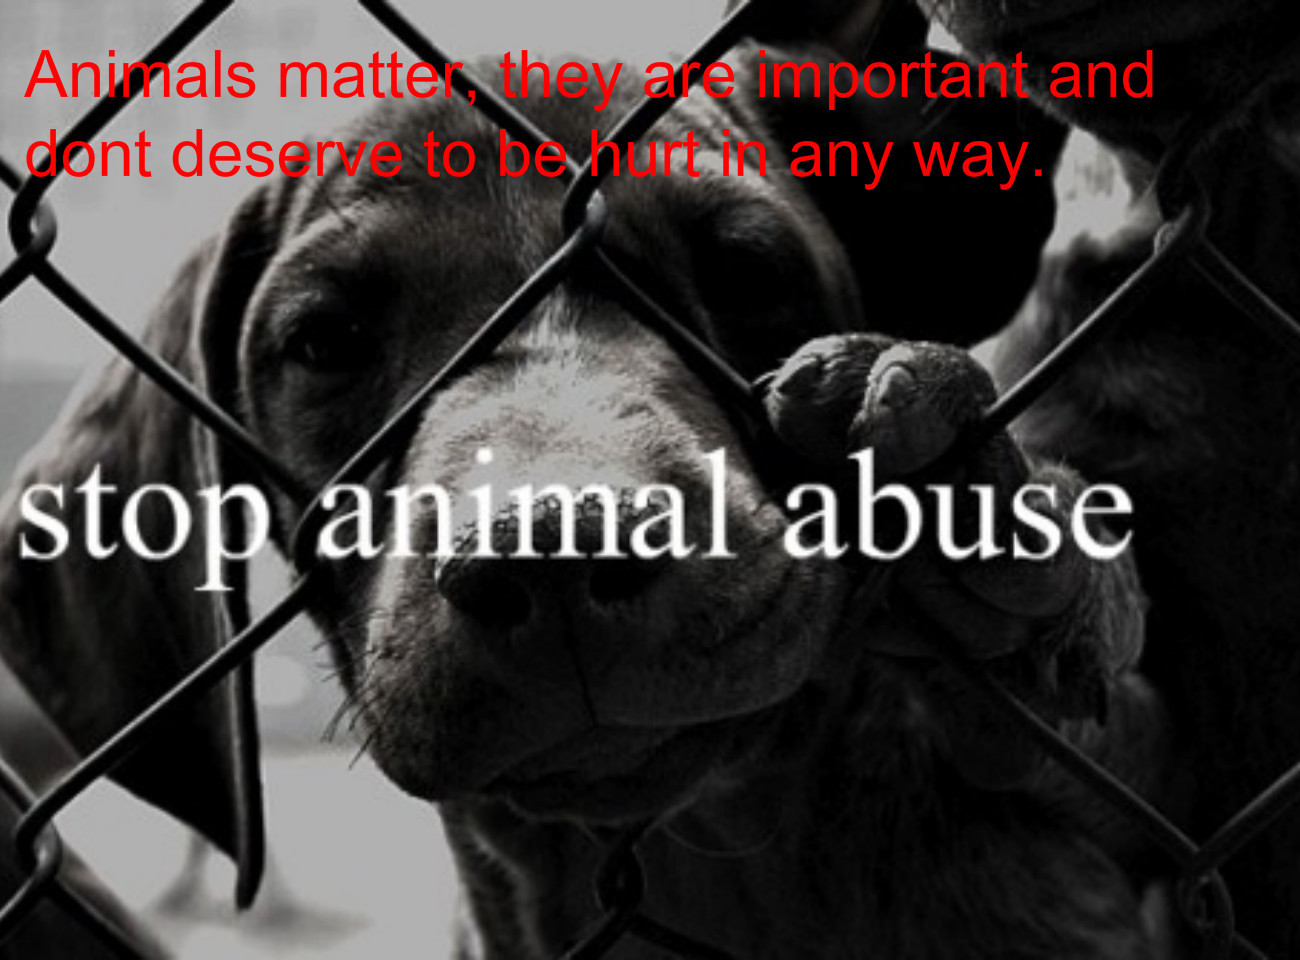 quotes about animal cruelty 93 quotes an als matt nt des r renportaratildefrac14and any way fimhieabuse